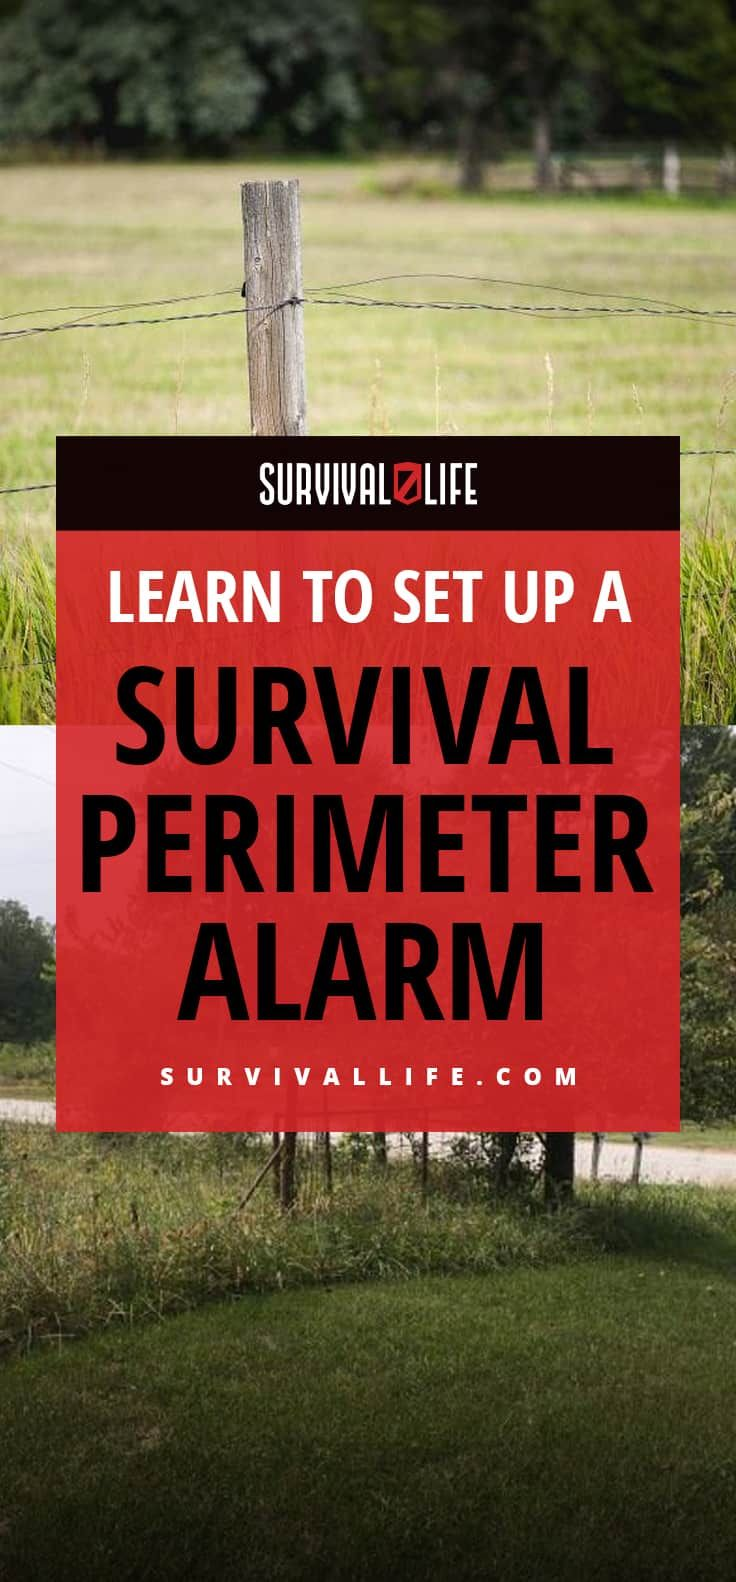 Perimeter alarm: have zones, stages and different alarms for each breach into each zone